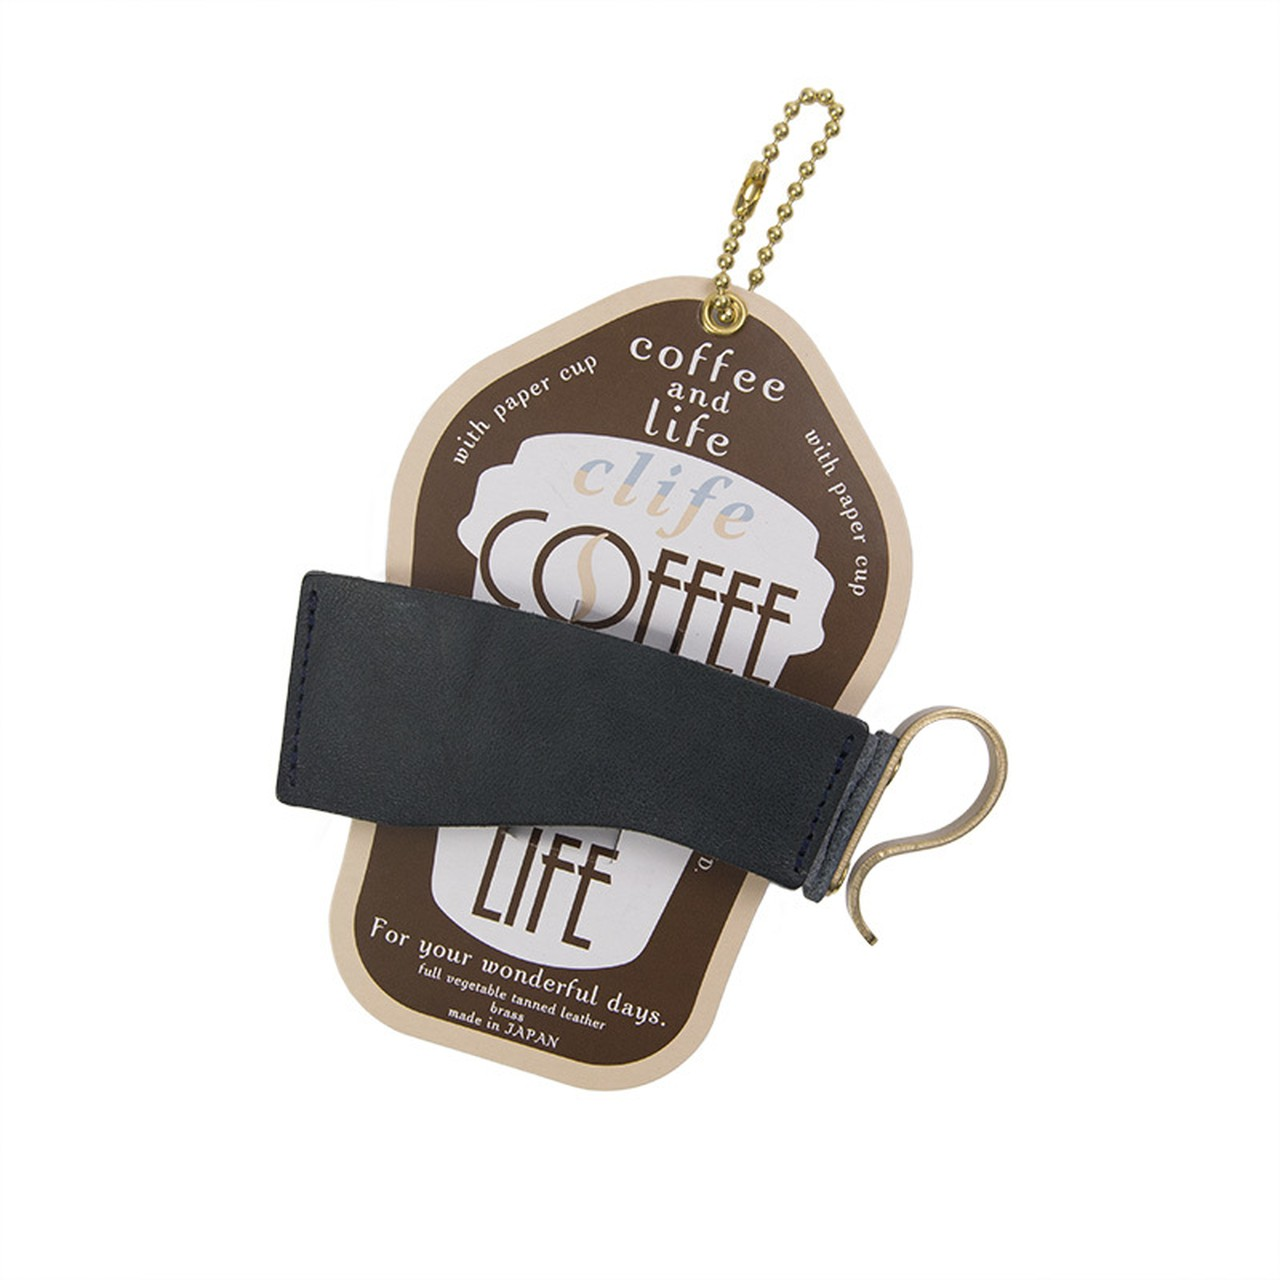 カップホルダー -Clife coffee and life NAVY-